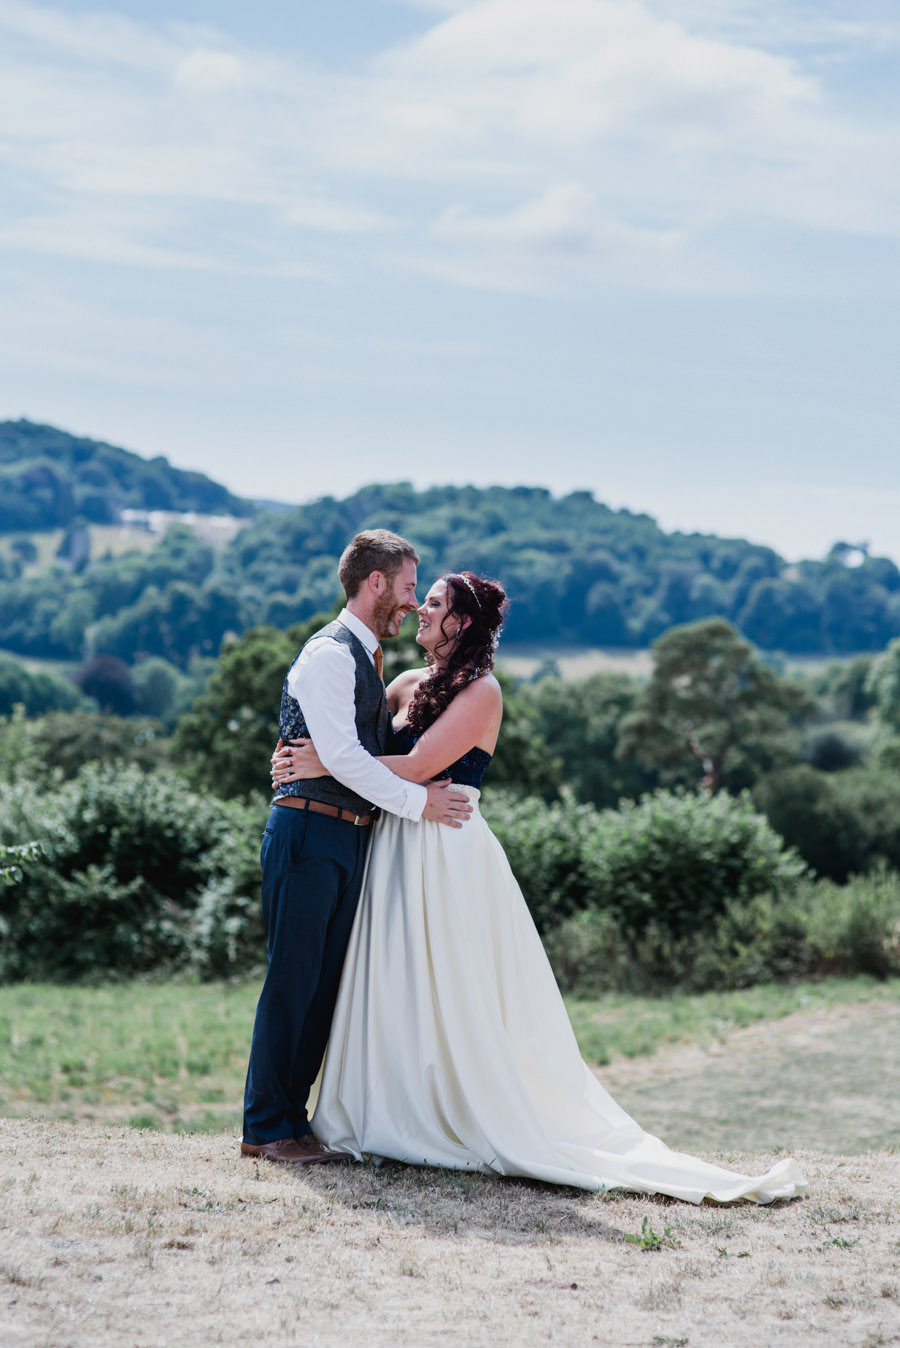 Relaxed 'good life' wedding blog with an outdoor ceremony on a farm, images by Special Day Wedding Photos (20)